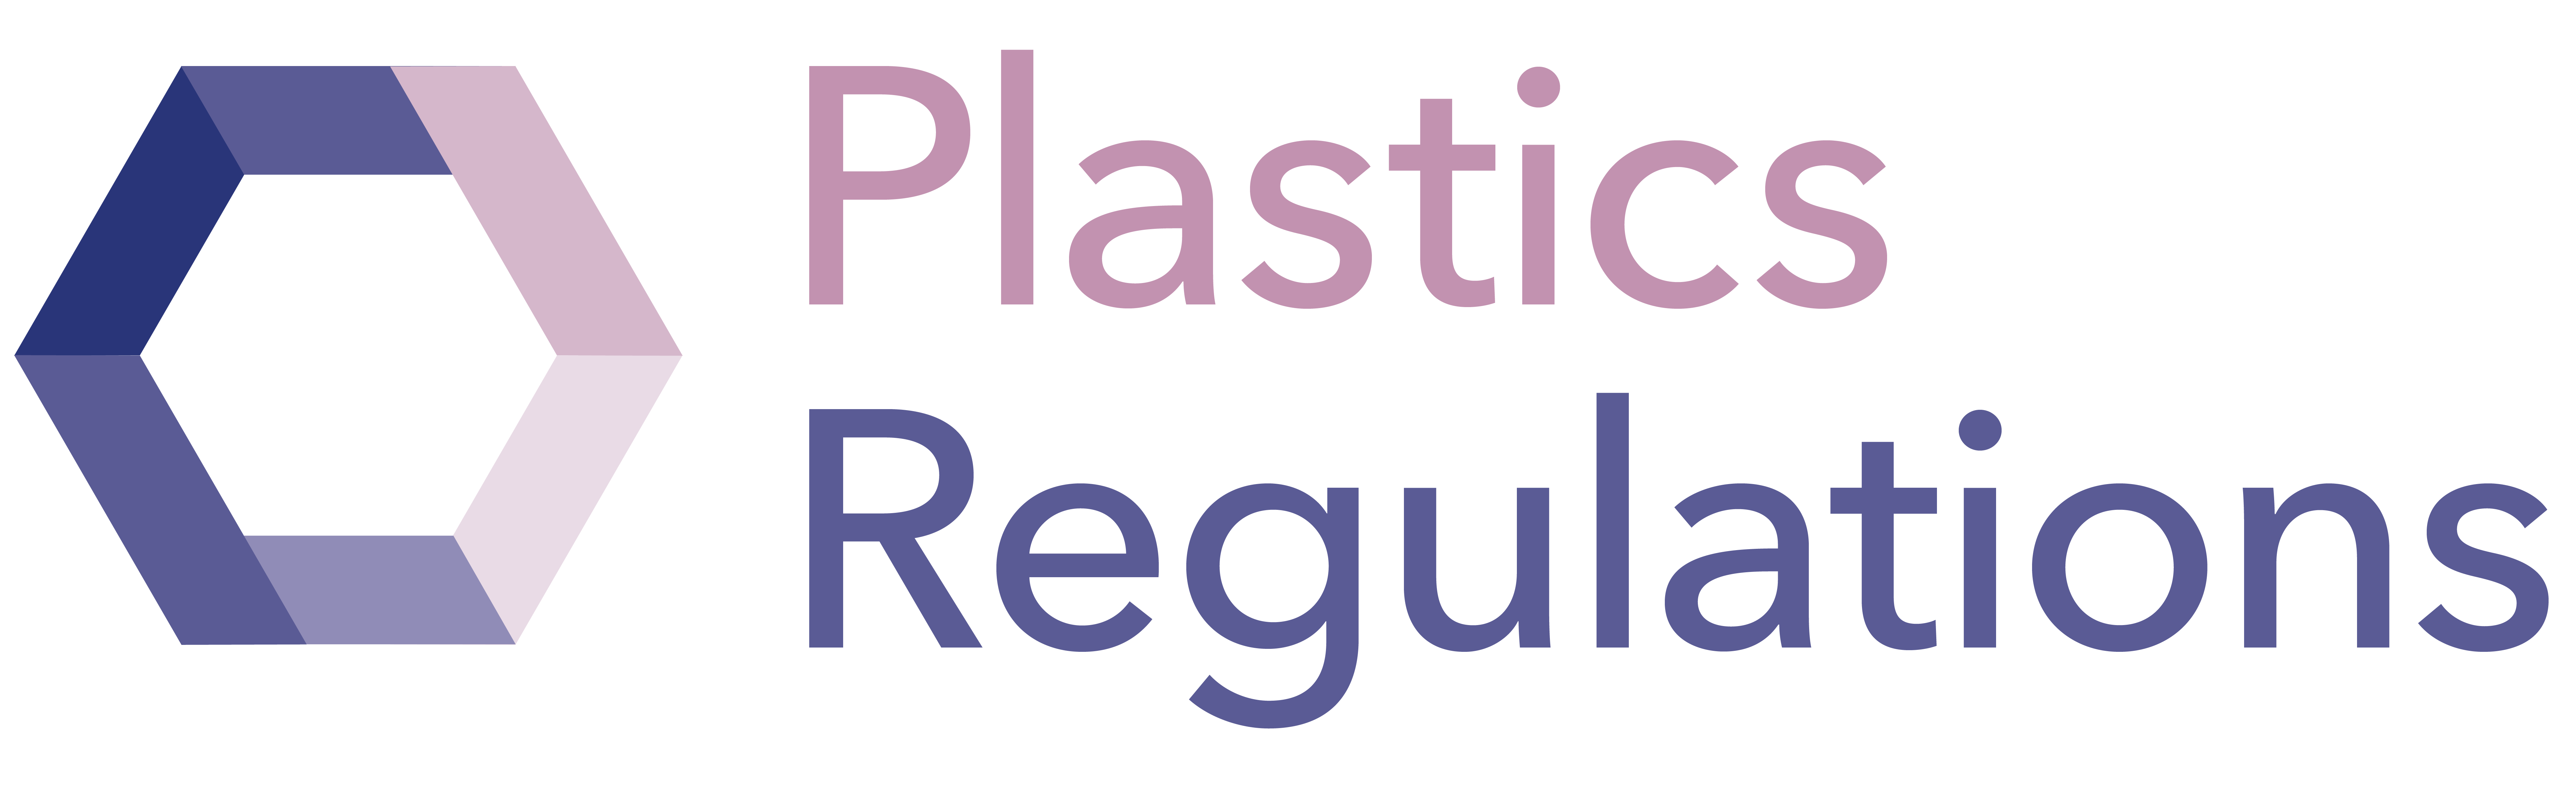 Plastics Regulations